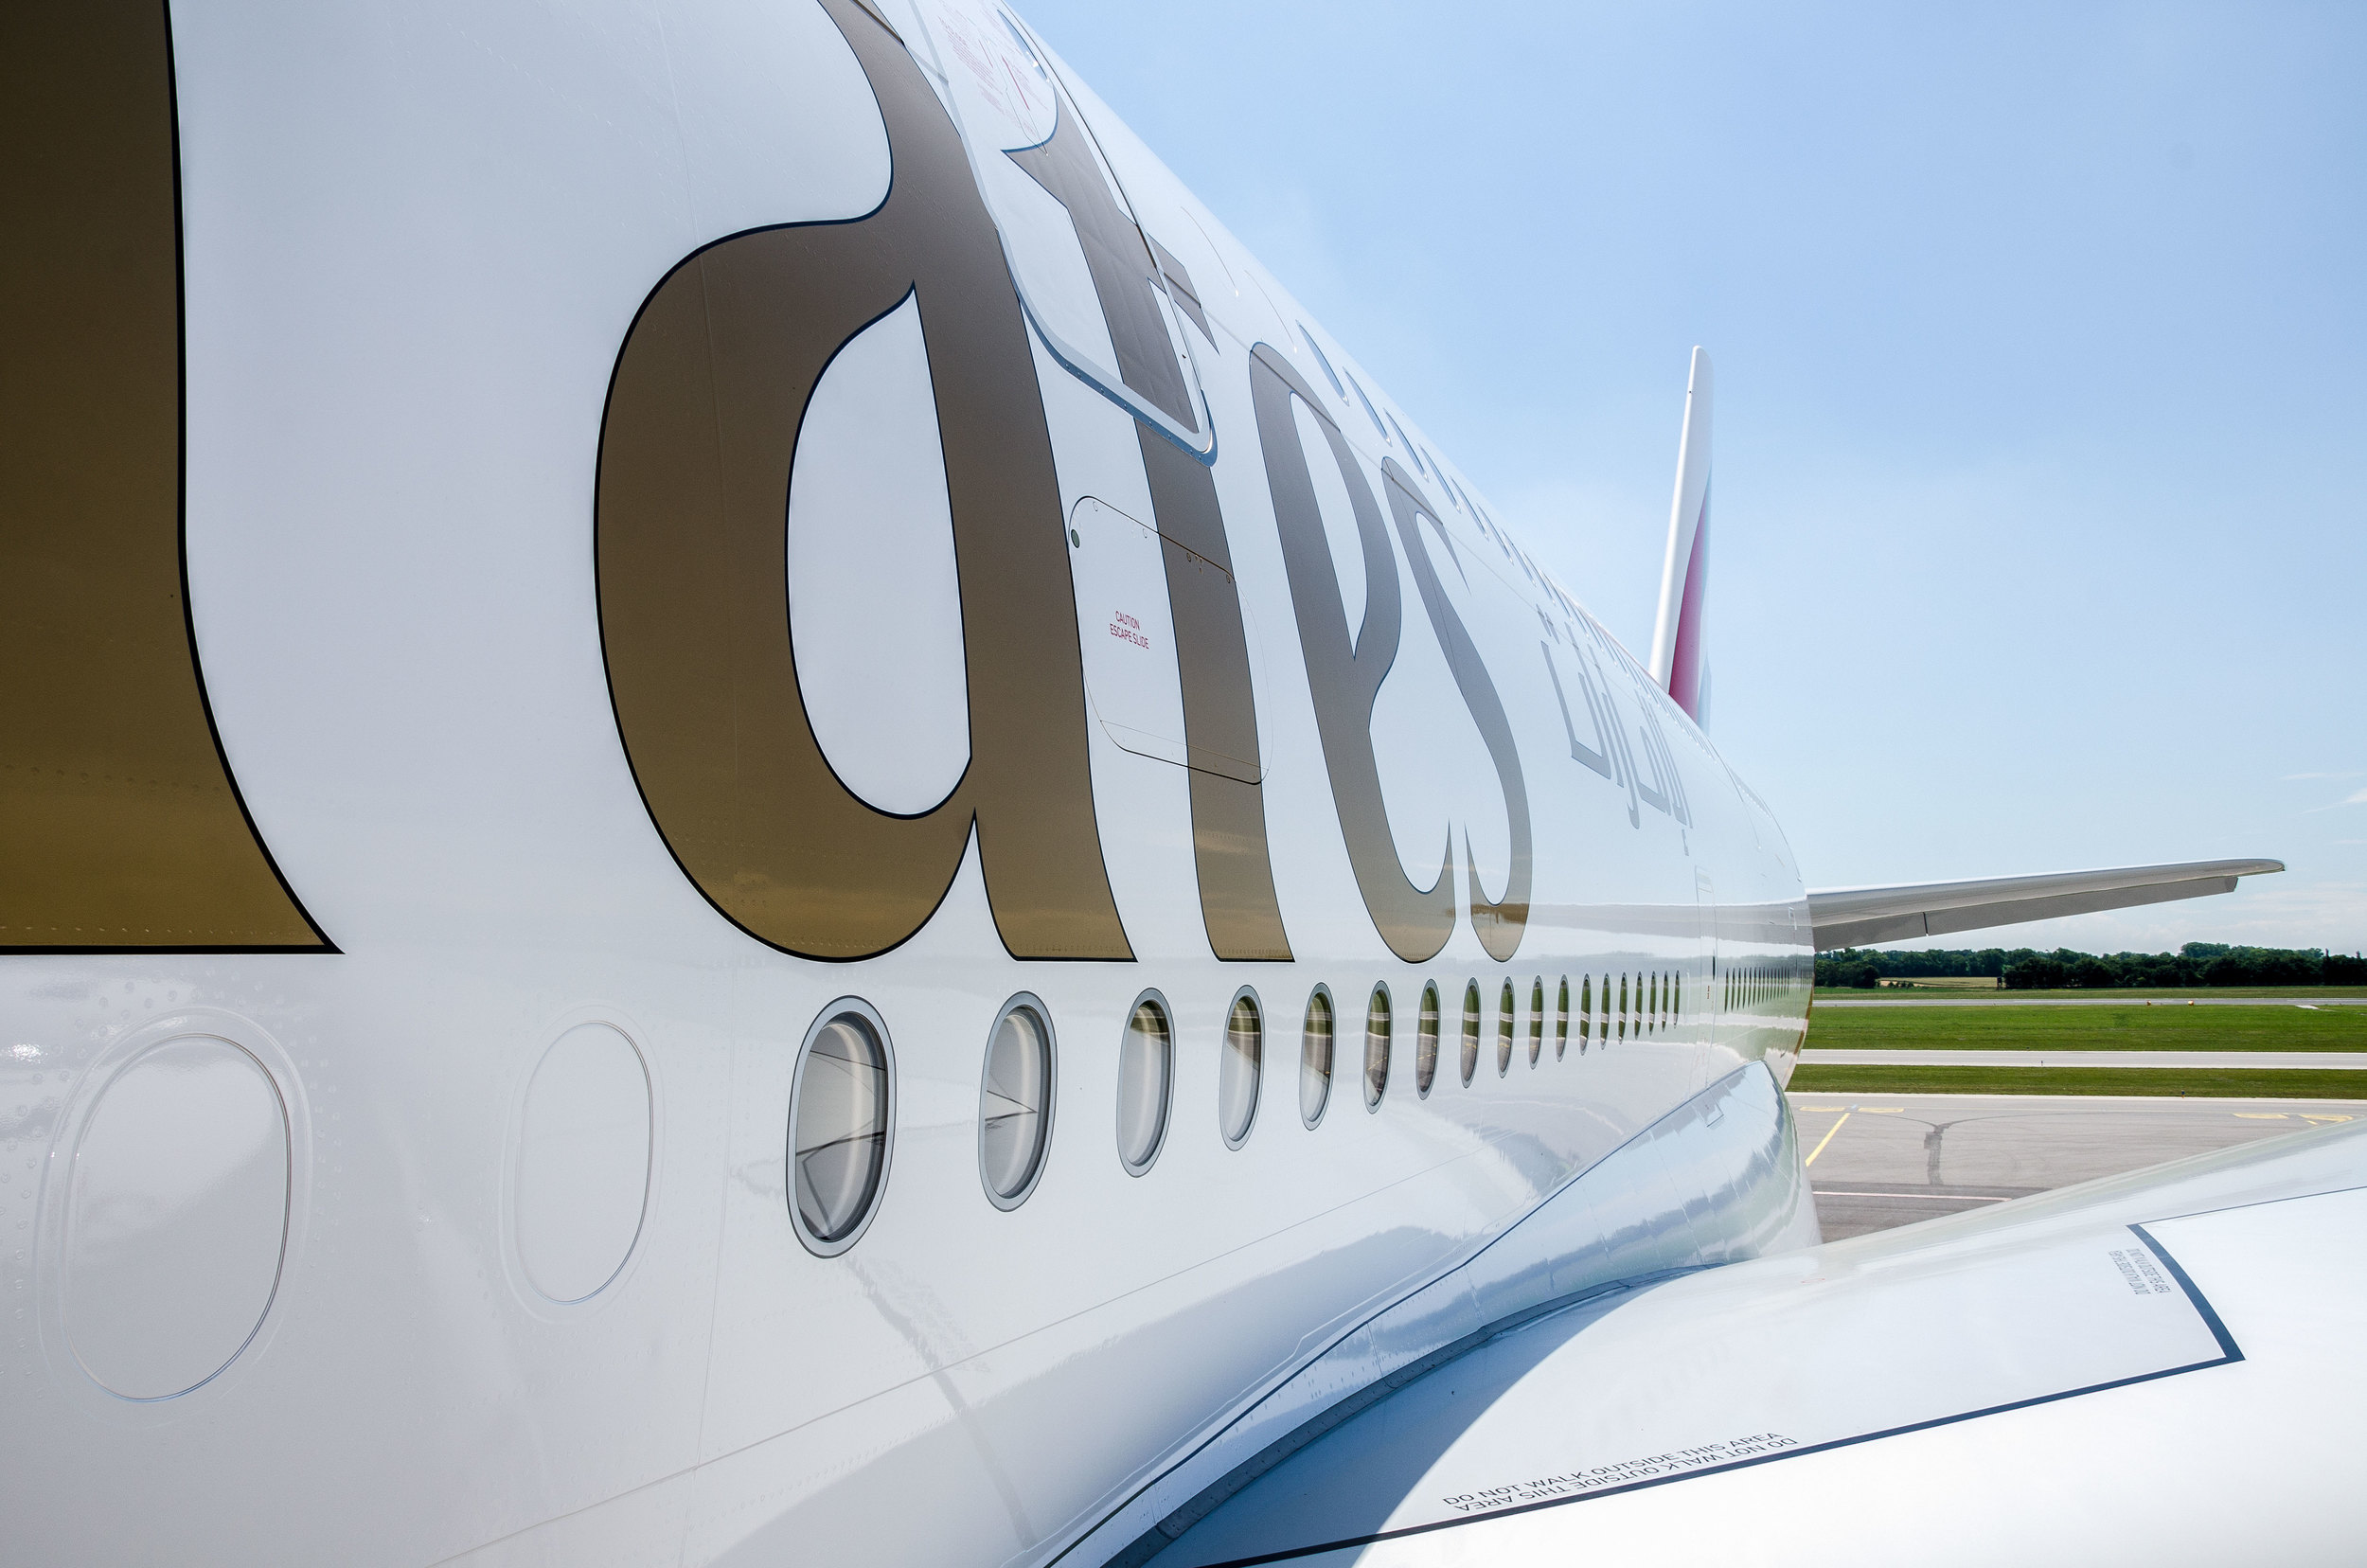 The three-class configured A380 can seat up to 519 passengers